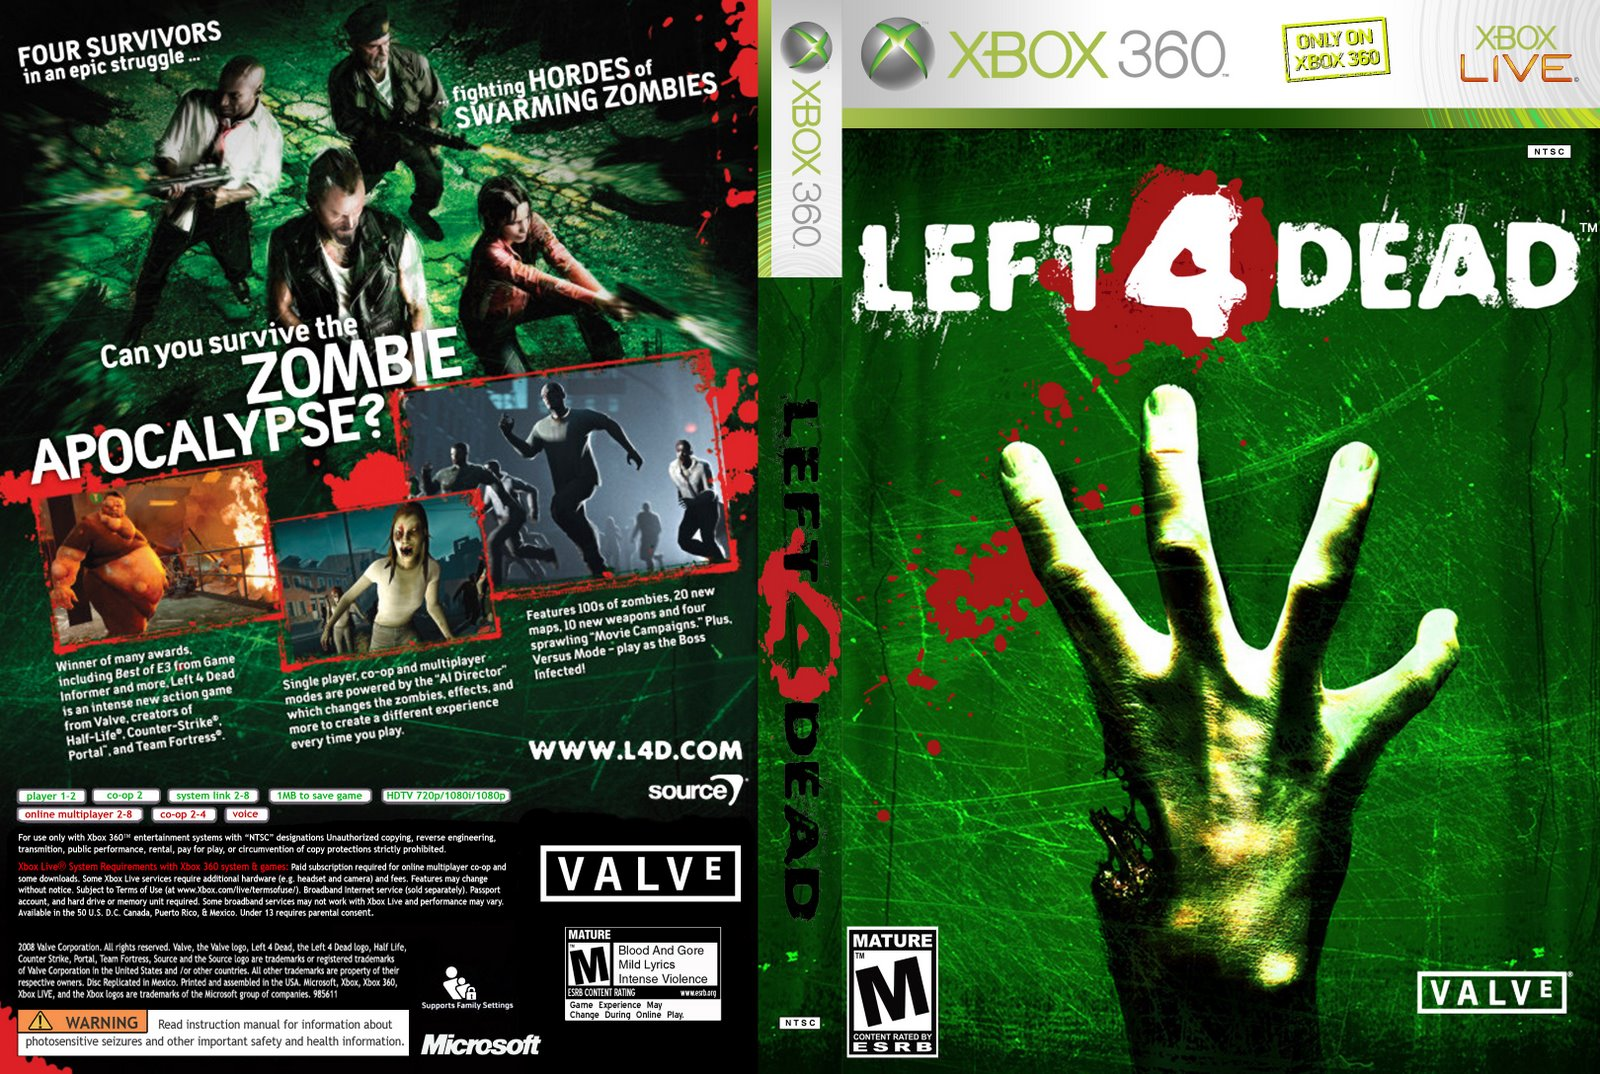 Download Left 4 Dead - Xbox360 Xbox 360 Game Covers Download